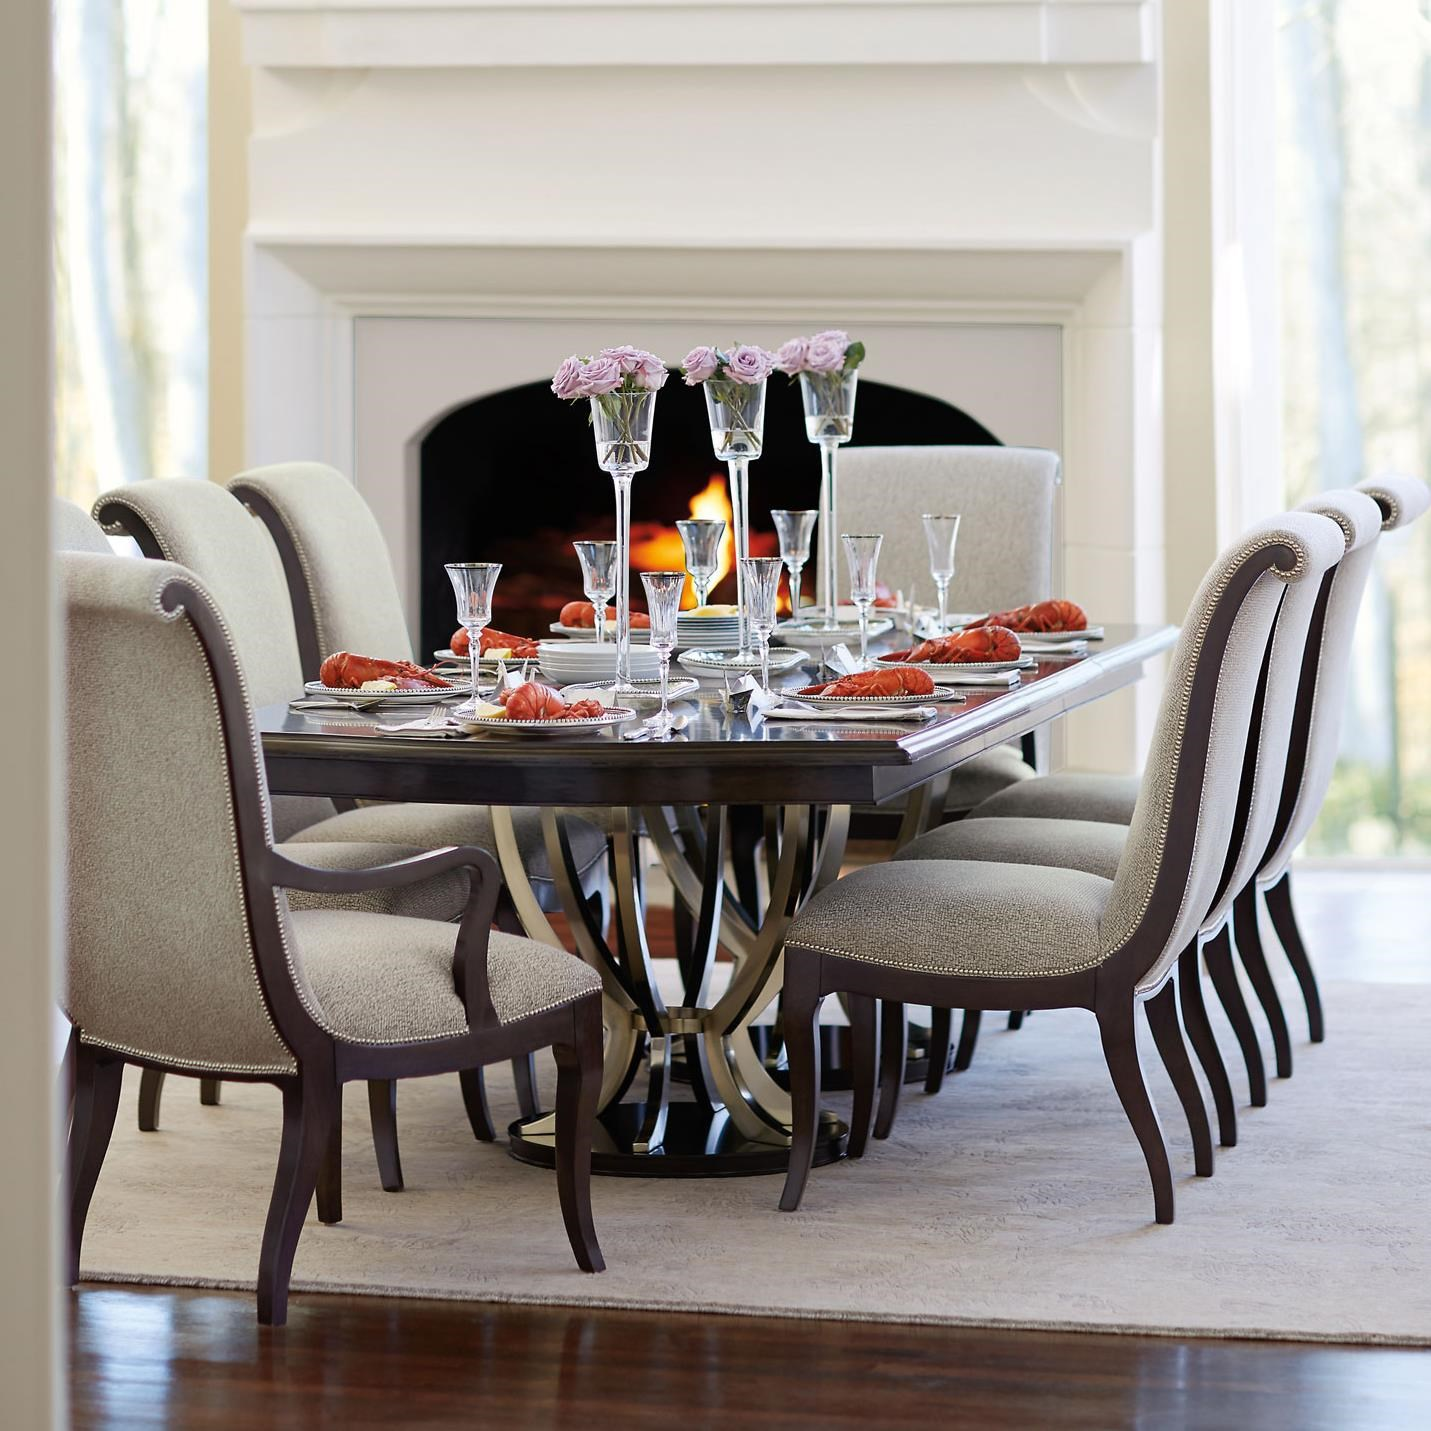 Bernhardt Miramont9 Piece Dining Table and Chair Set ...  sc 1 st  Dunk u0026 Bright Furniture & Bernhardt Miramont 9 Piece Dining Set with Double Pedestal Table and ...